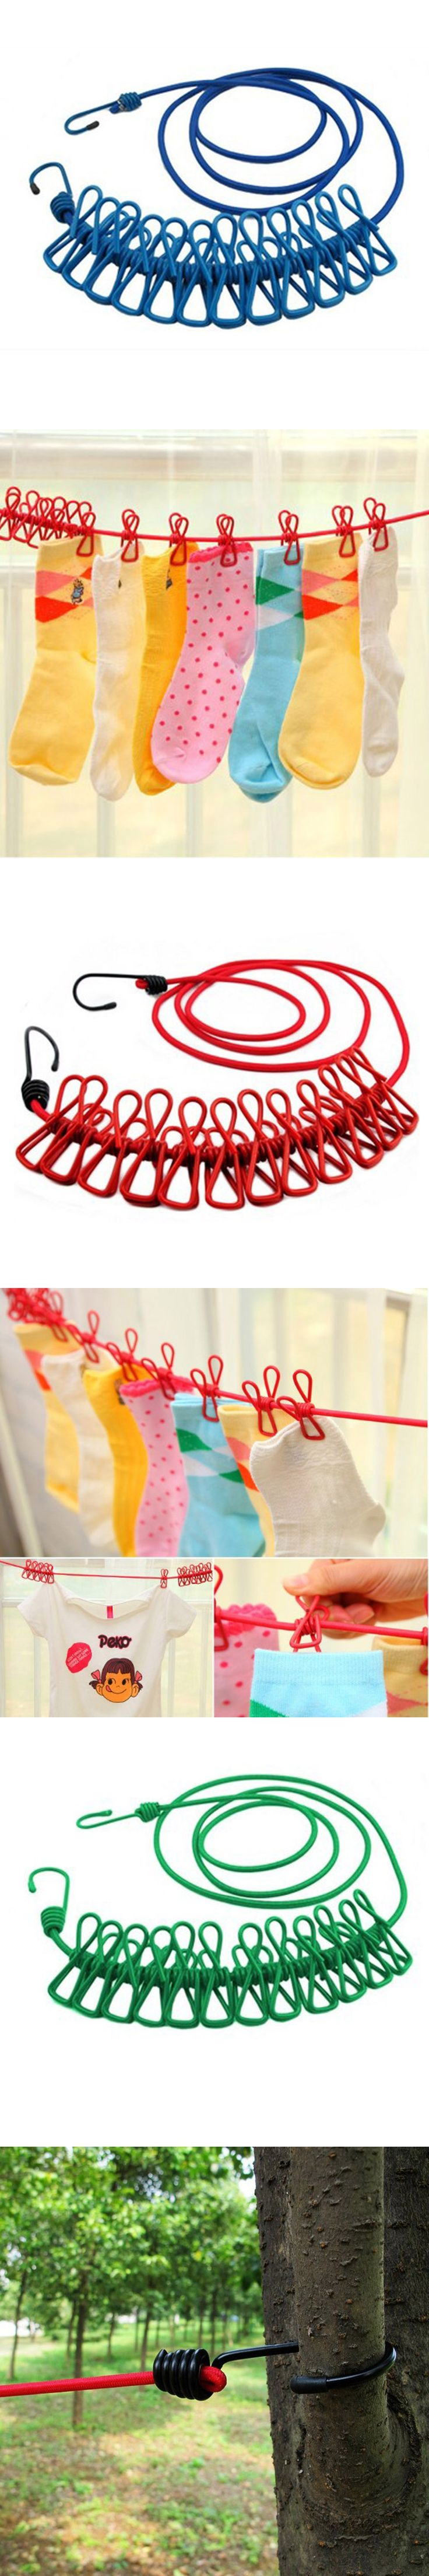 185CM Durable Wild Travel Portable Windproof Elastic Clothesline Clips Hanger Drying rack clothes hanging rope line